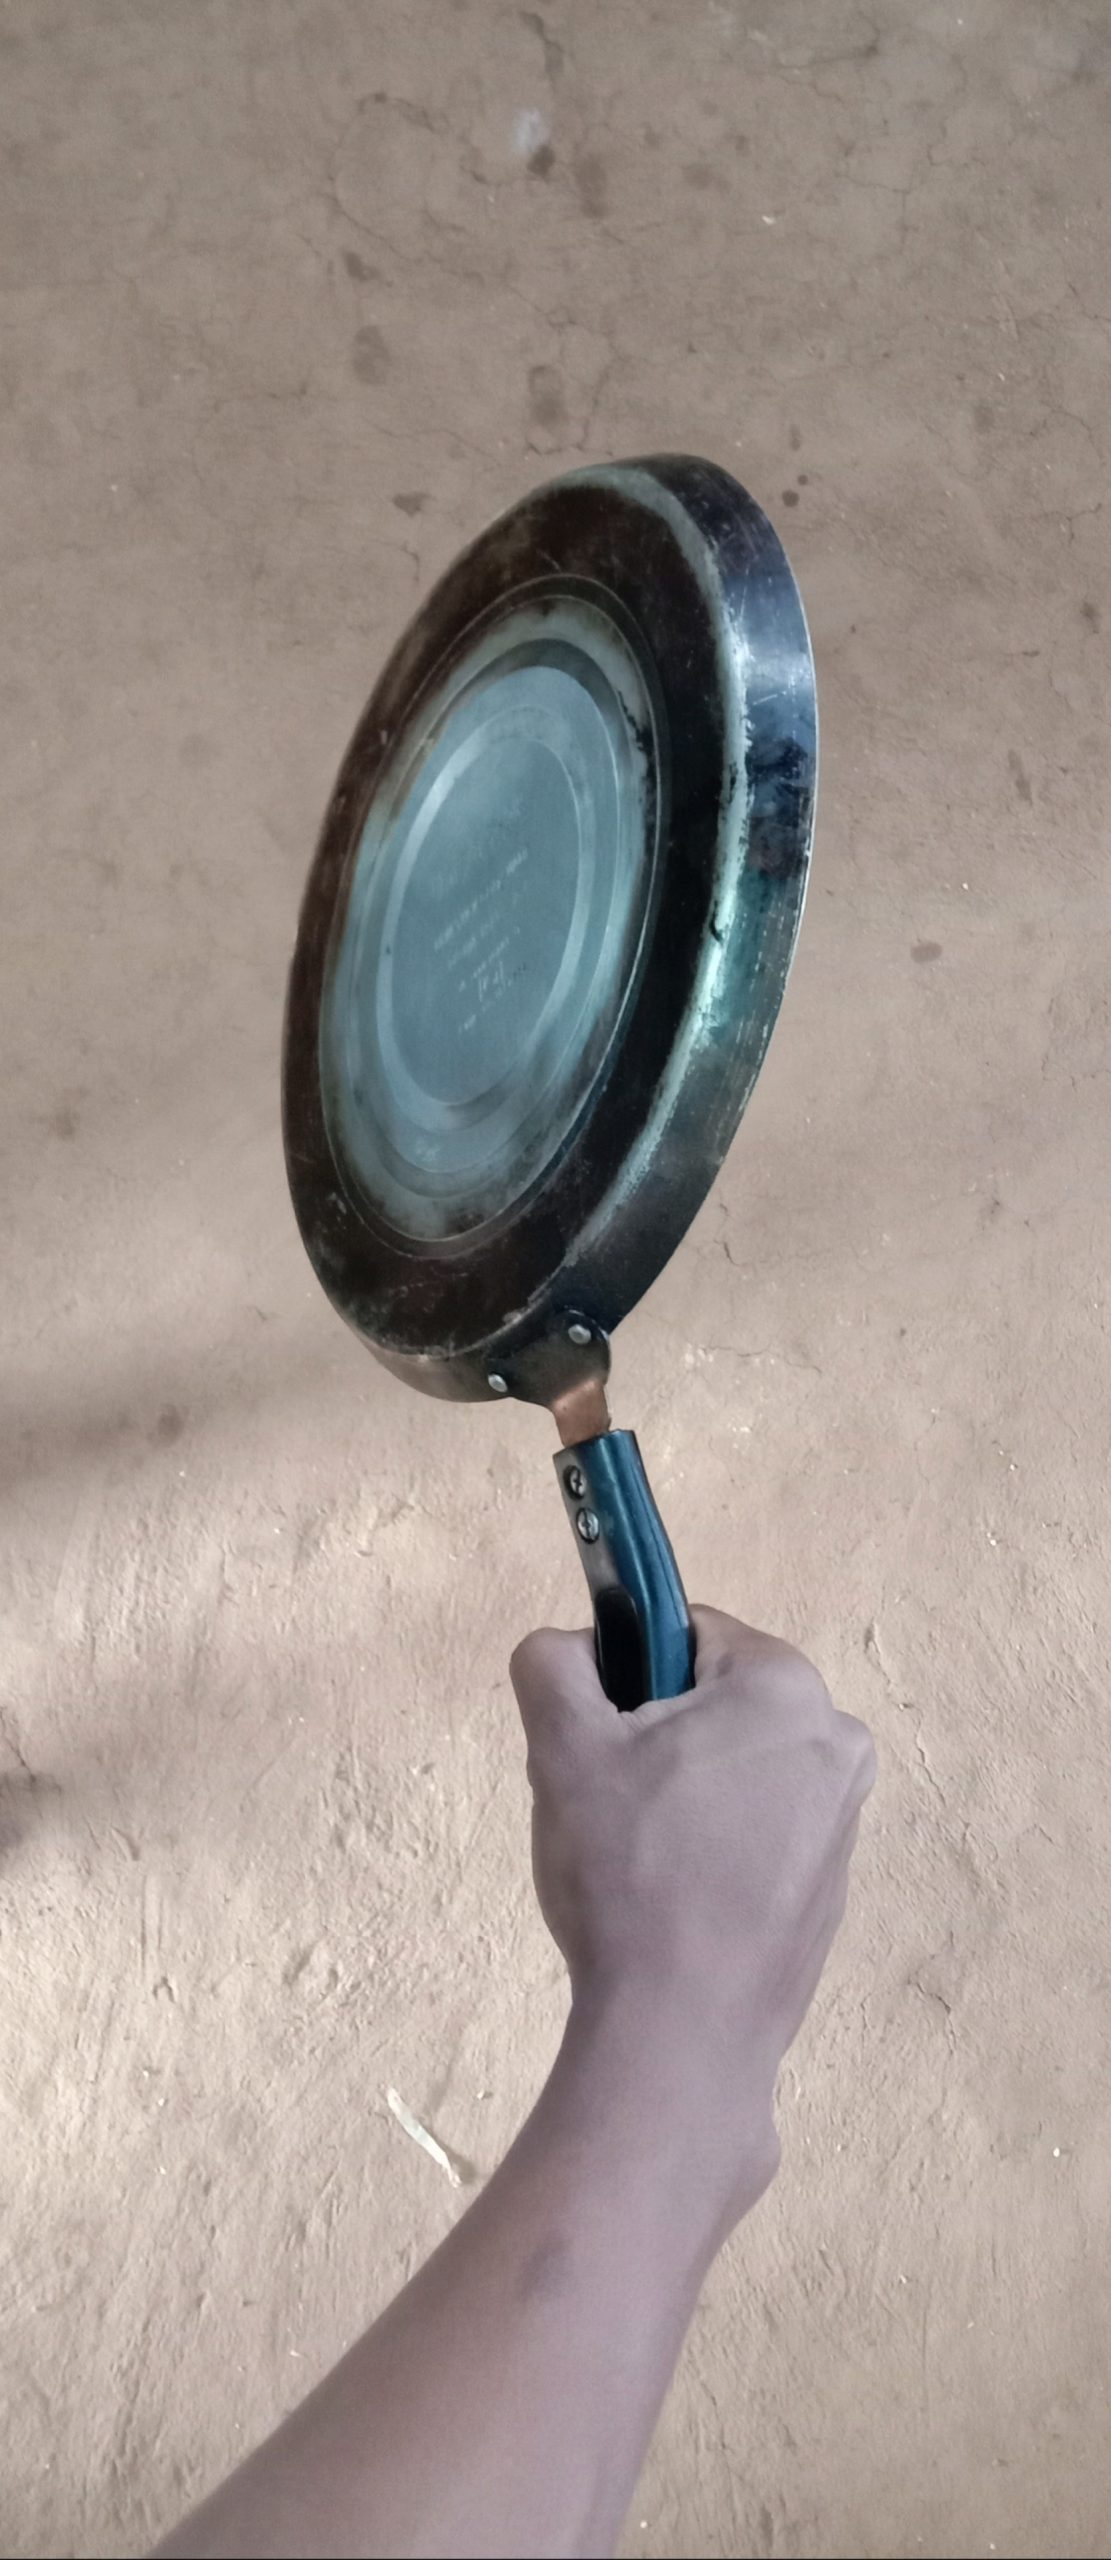 A pan in hand